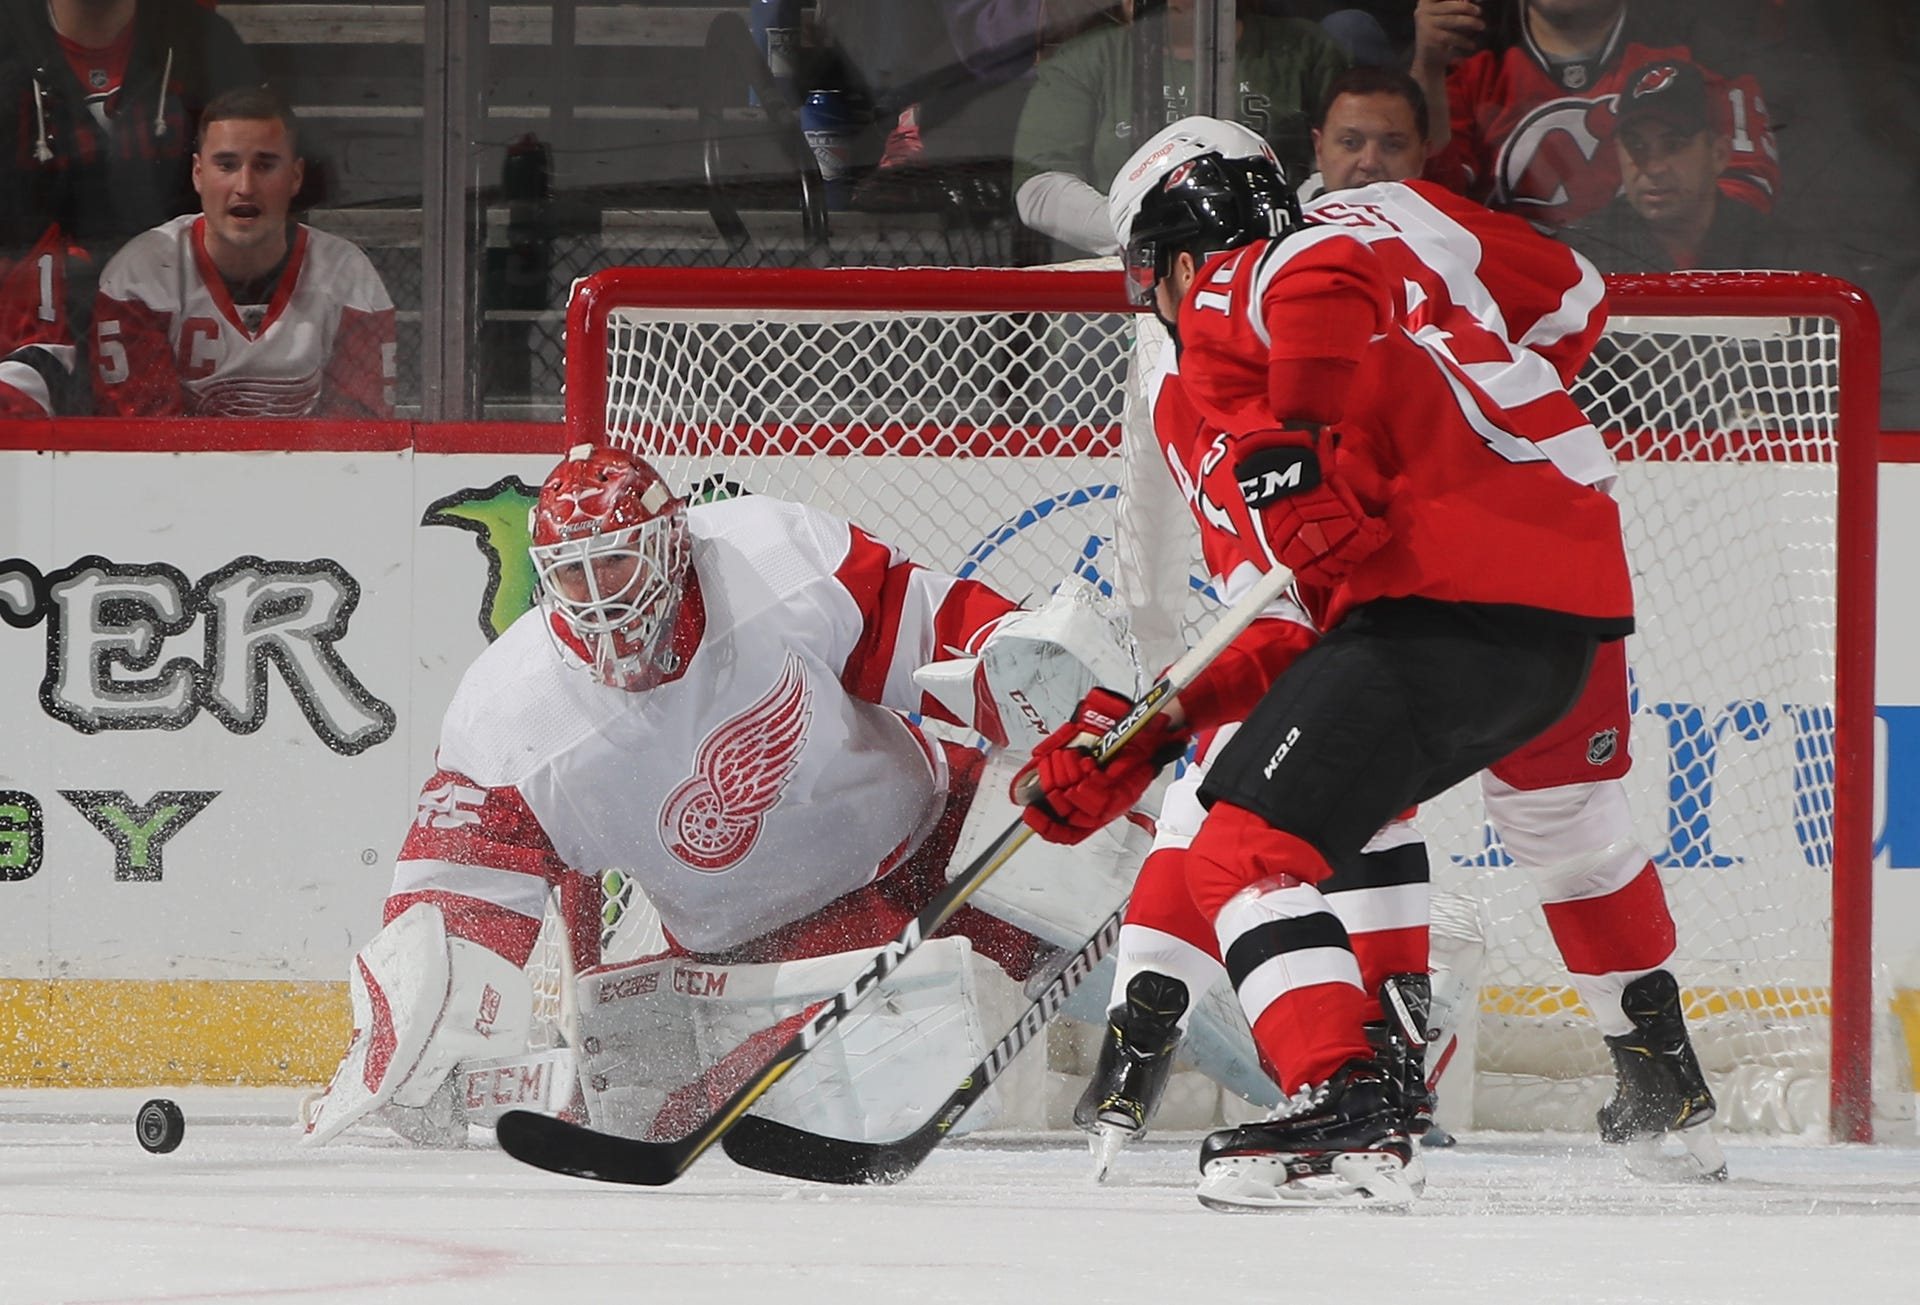 wholesale dealer 1f990 71a27 Detroit Red Wings 3, New Jersey Devils 2 (OT): Photos from ...